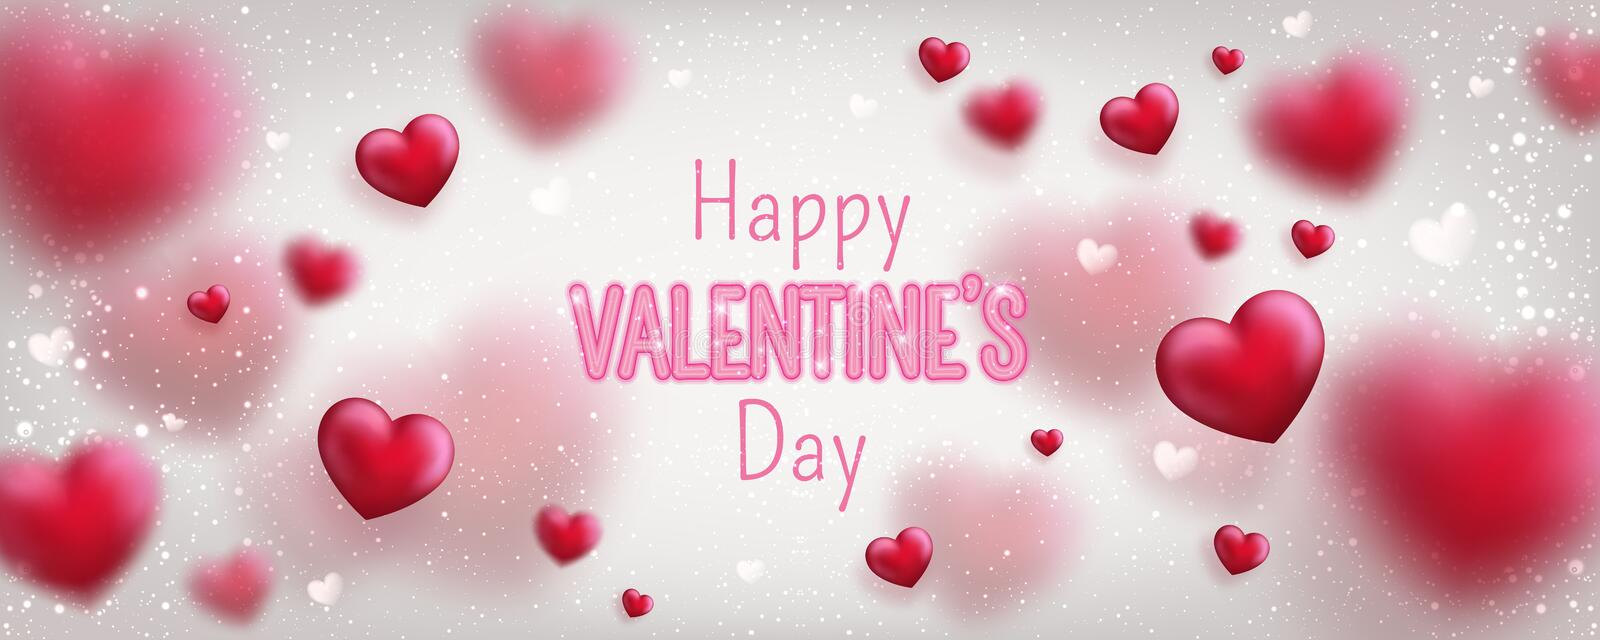 Glowing text for Happy Valentines Day greeting card. Cute love banner for 14 February. Holiday background with 3d hearts, light, stars on white. Vector stock illustration